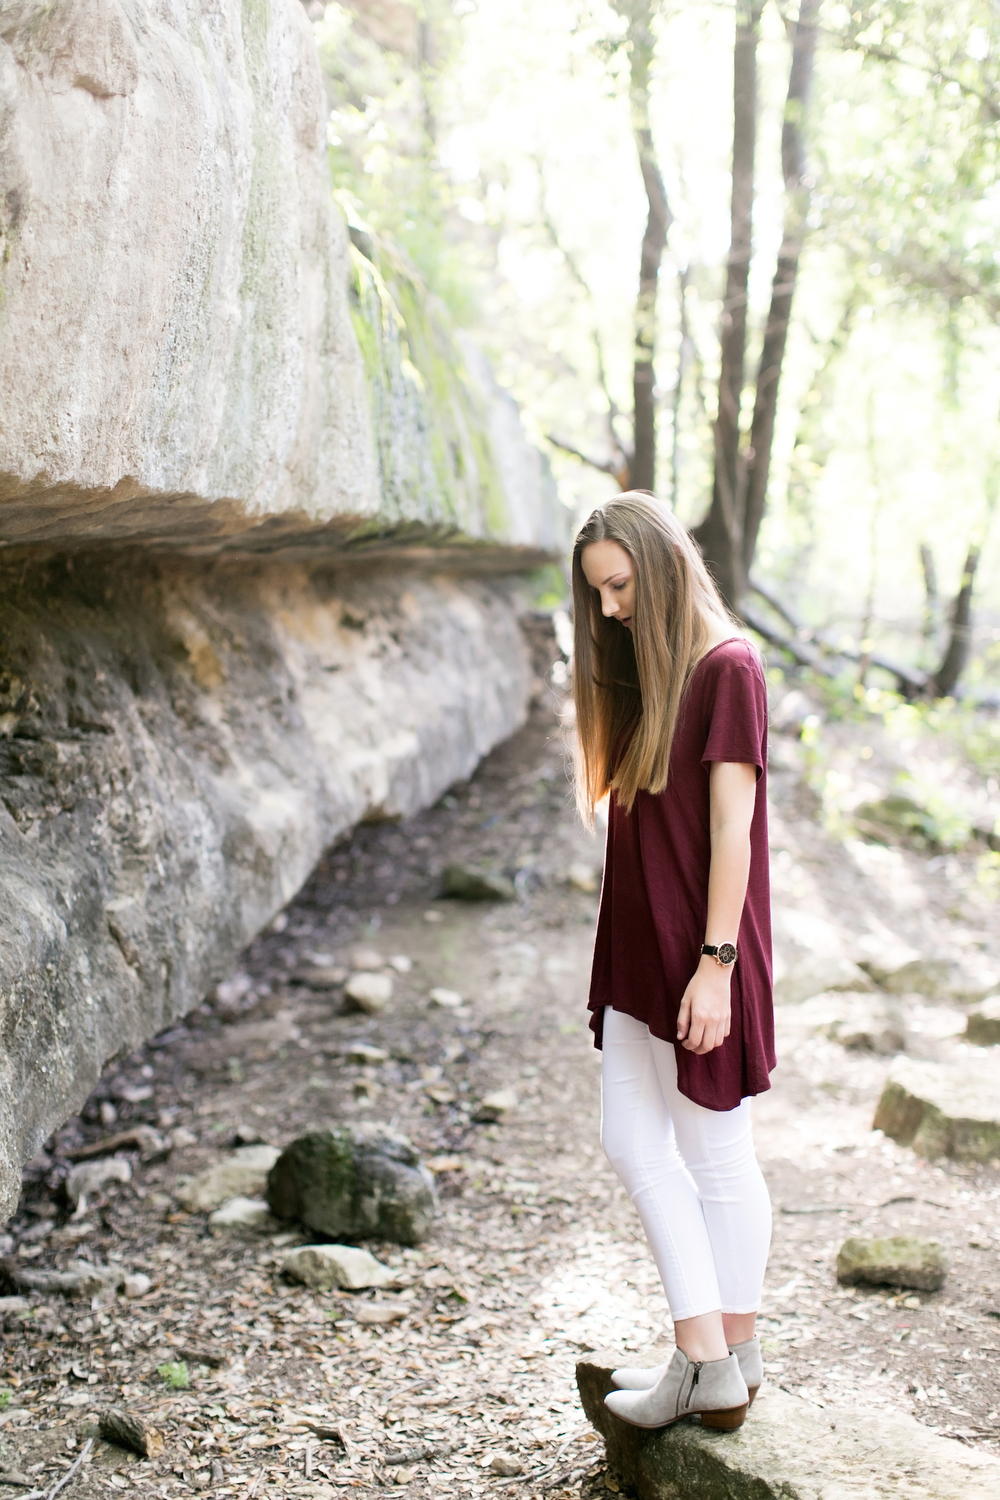 kate stafford photography | austin senior